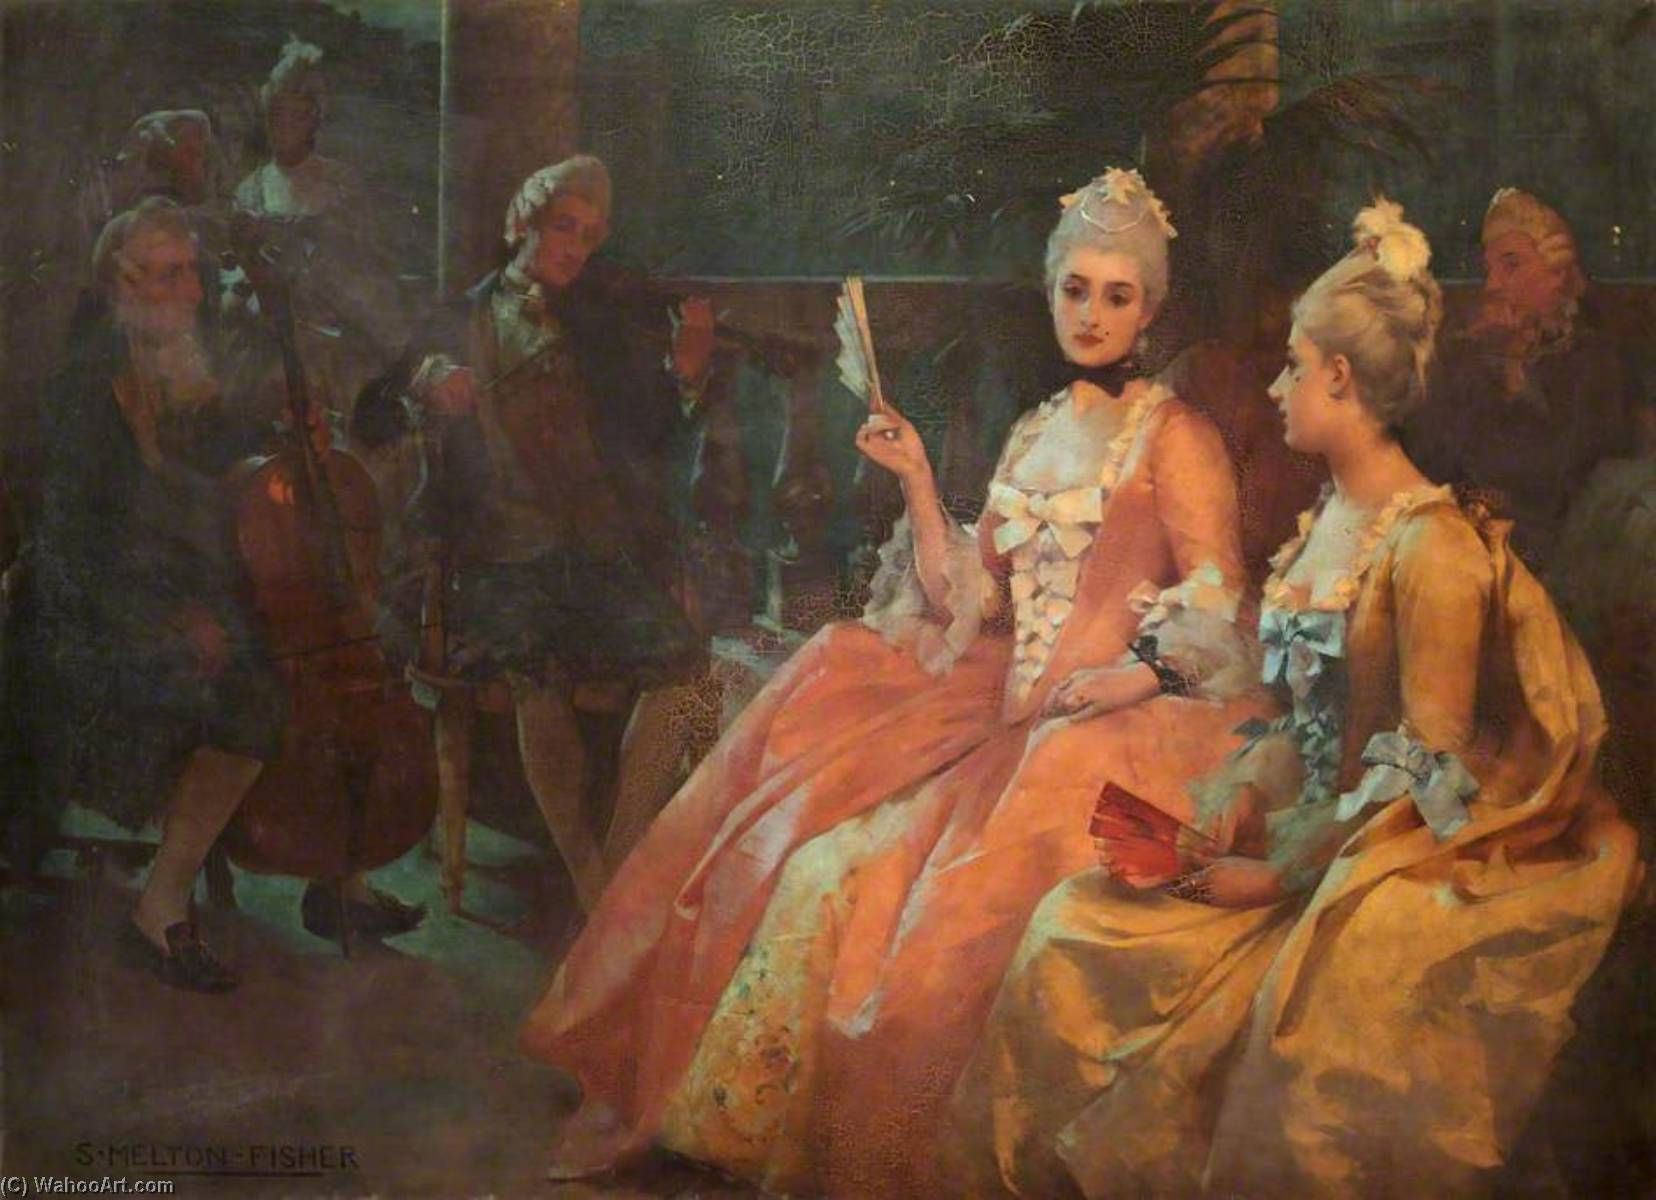 Wikioo.org - The Encyclopedia of Fine Arts - Painting, Artwork by Samuel Melton Fisher - A Moonlight Sonata, Venice